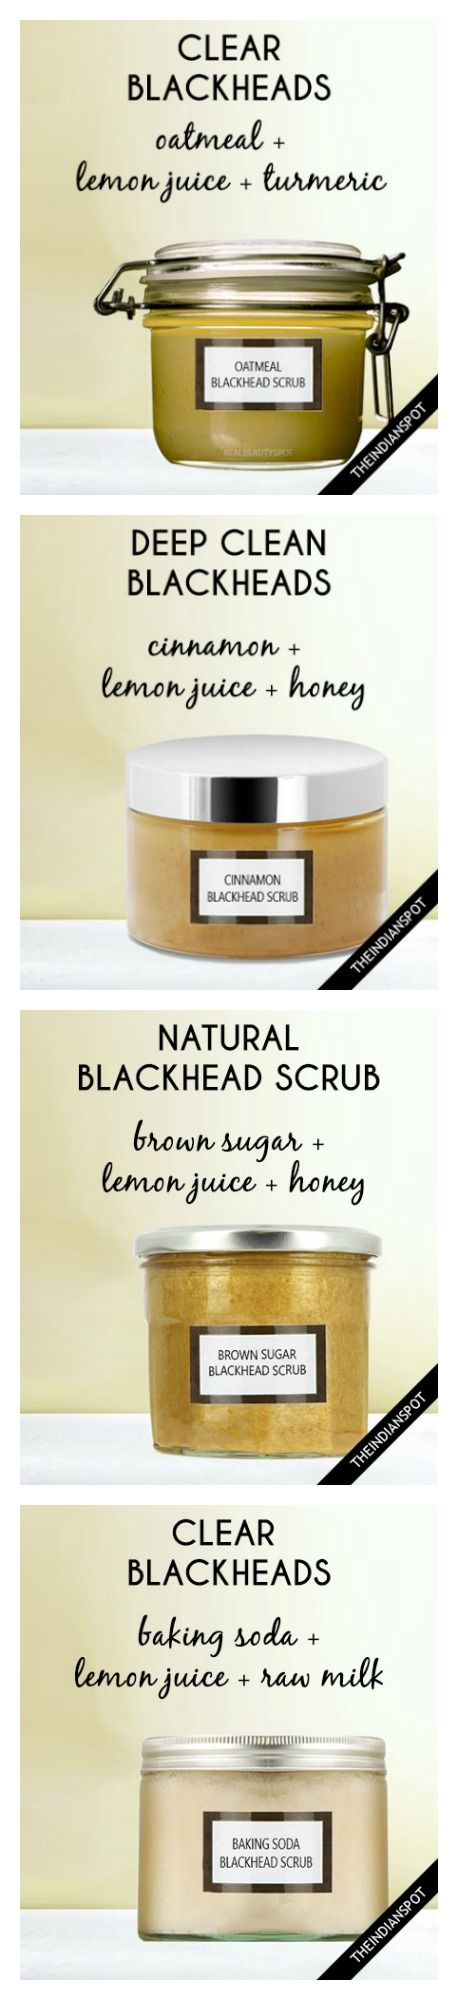 5 Best Homemade Blackhead Remover Scrubs. http://www.ebay.co.uk/usr/thevoyagebird Check out this natural remedies / home remedies using lemon juice, turmeric, oatmeal, cinammon, honey, and other things you can find within your own house. Add them to your skincare routine following this skincare  https://www.etsy.com/uk/shop/TheVoyageBird